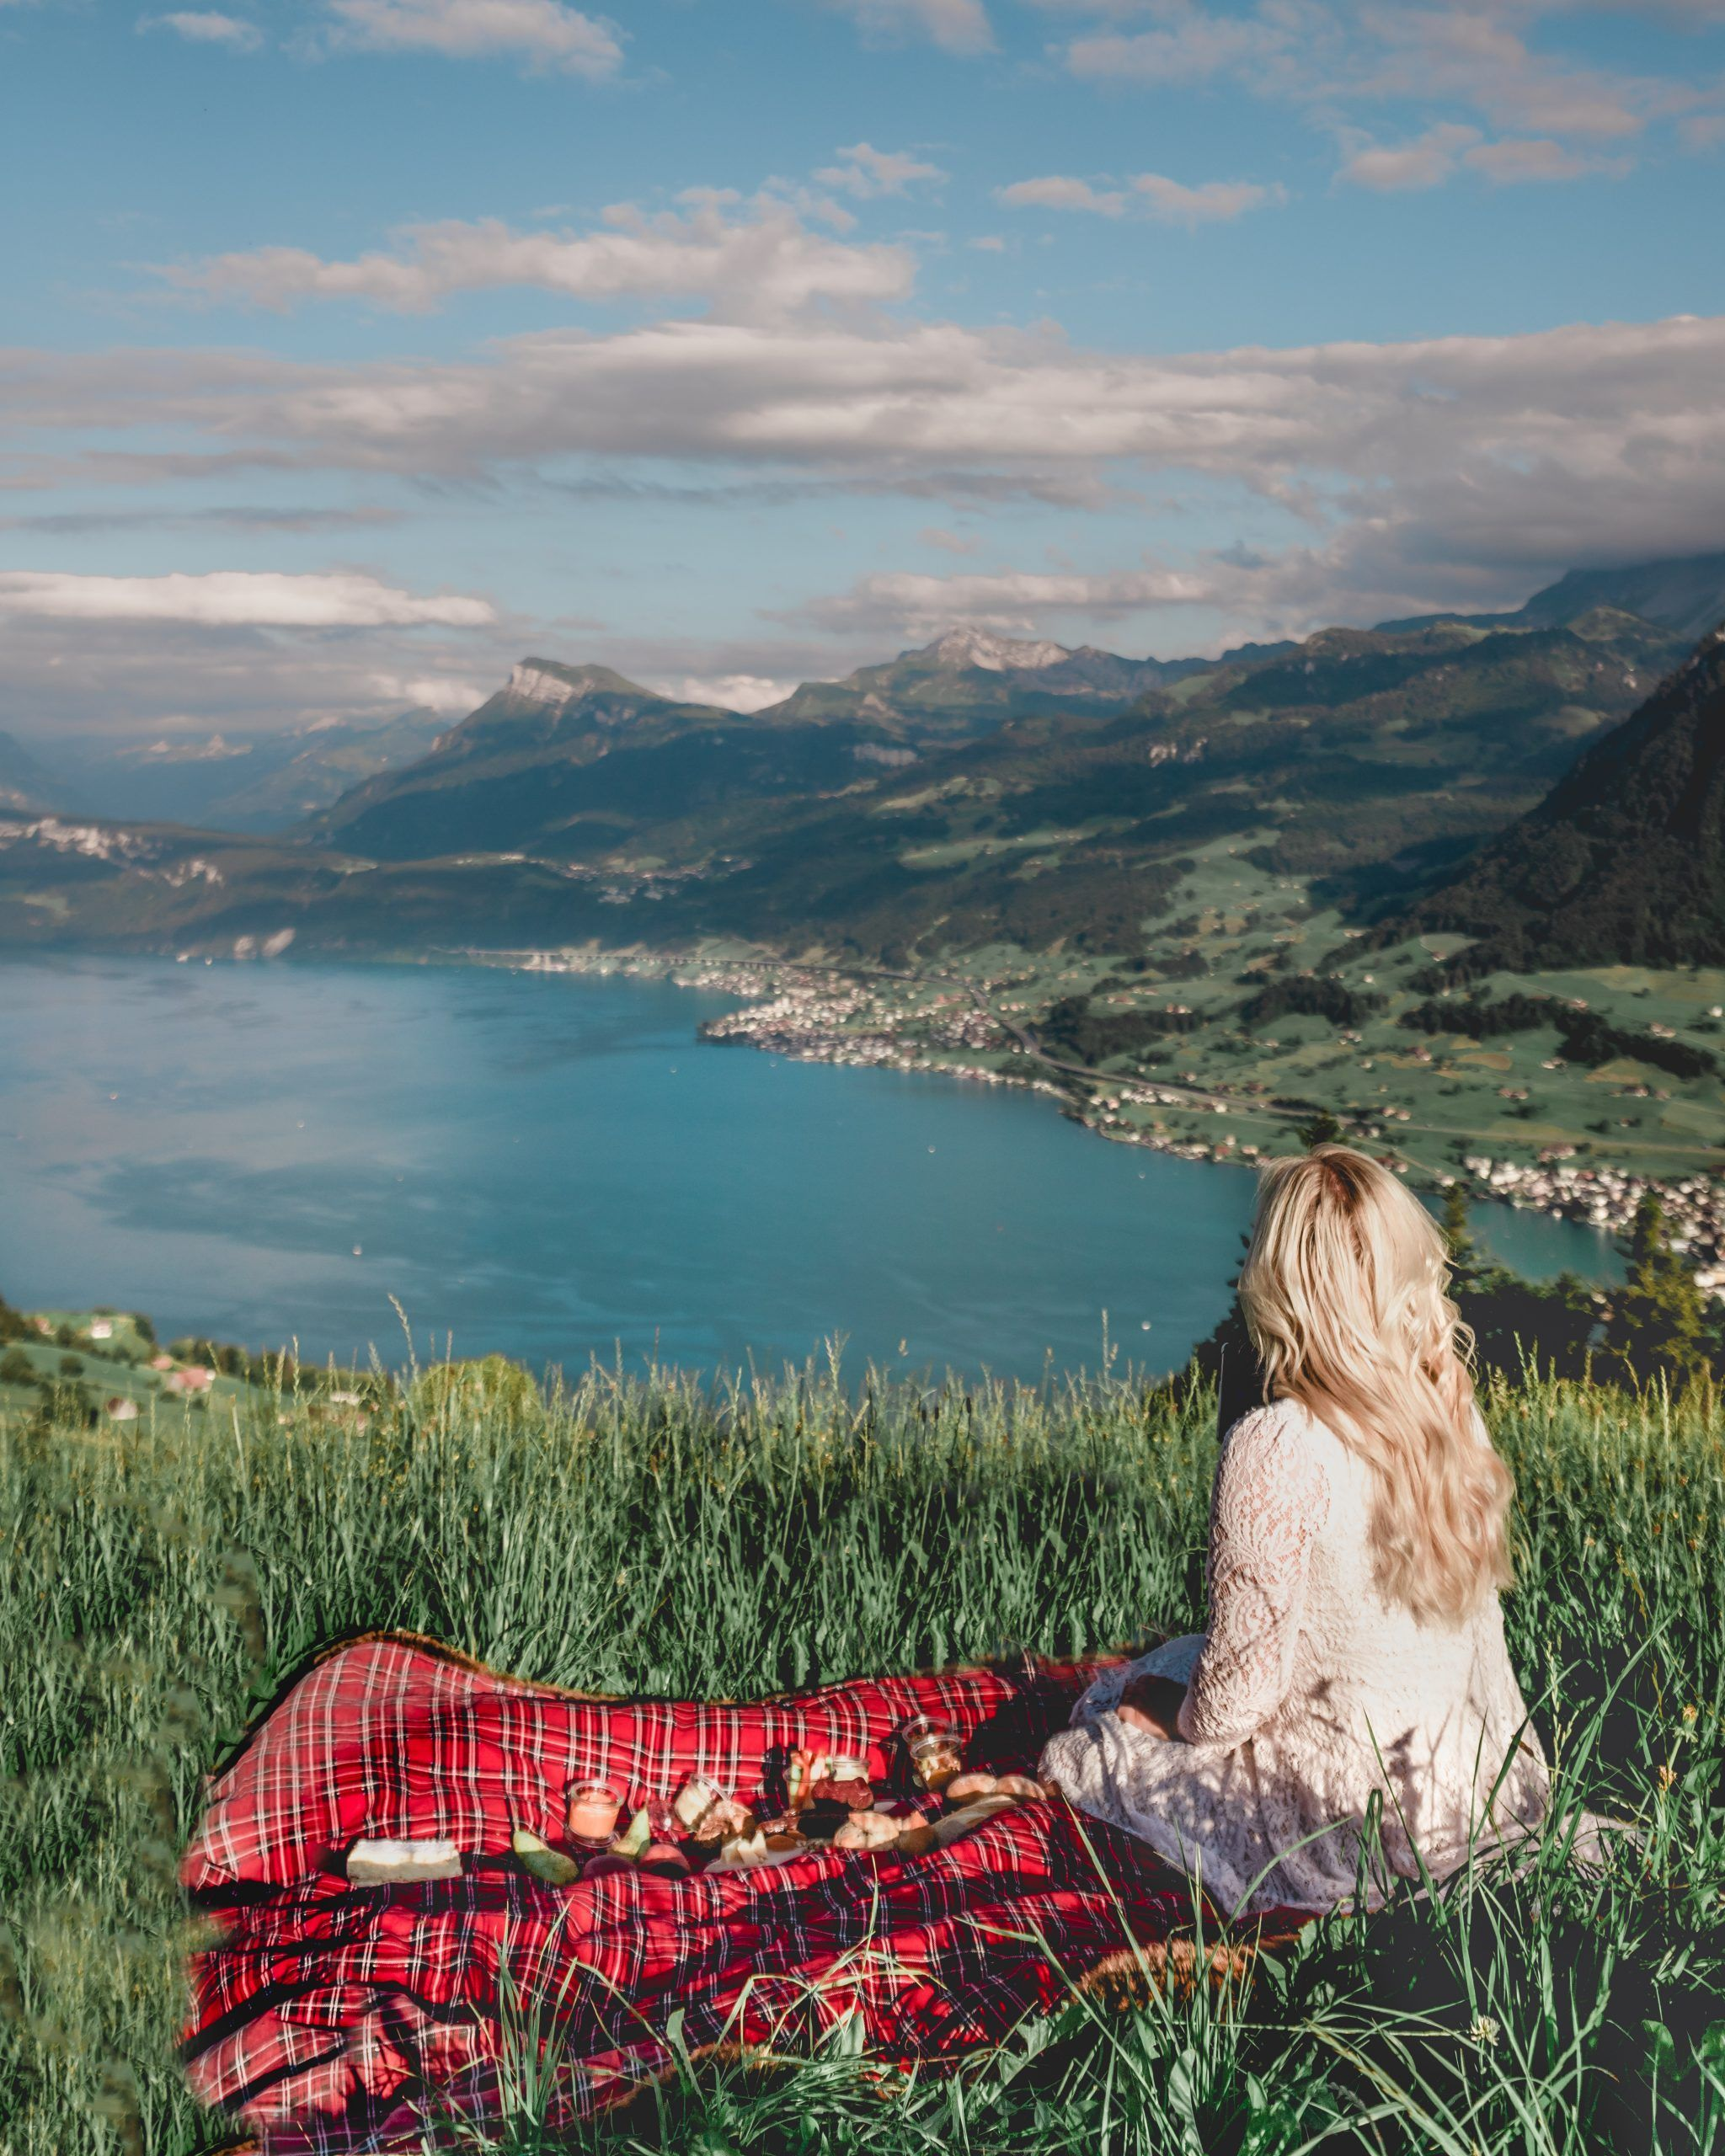 Best Hotel In Switzerland With Infinity Pool Staying At Villa Honegg The Best Boutique Hotel In Switzerland Charlies Wanderings In 2020 Switzerland Hotels Switzerland Places To Visit Best Boutique Hotels